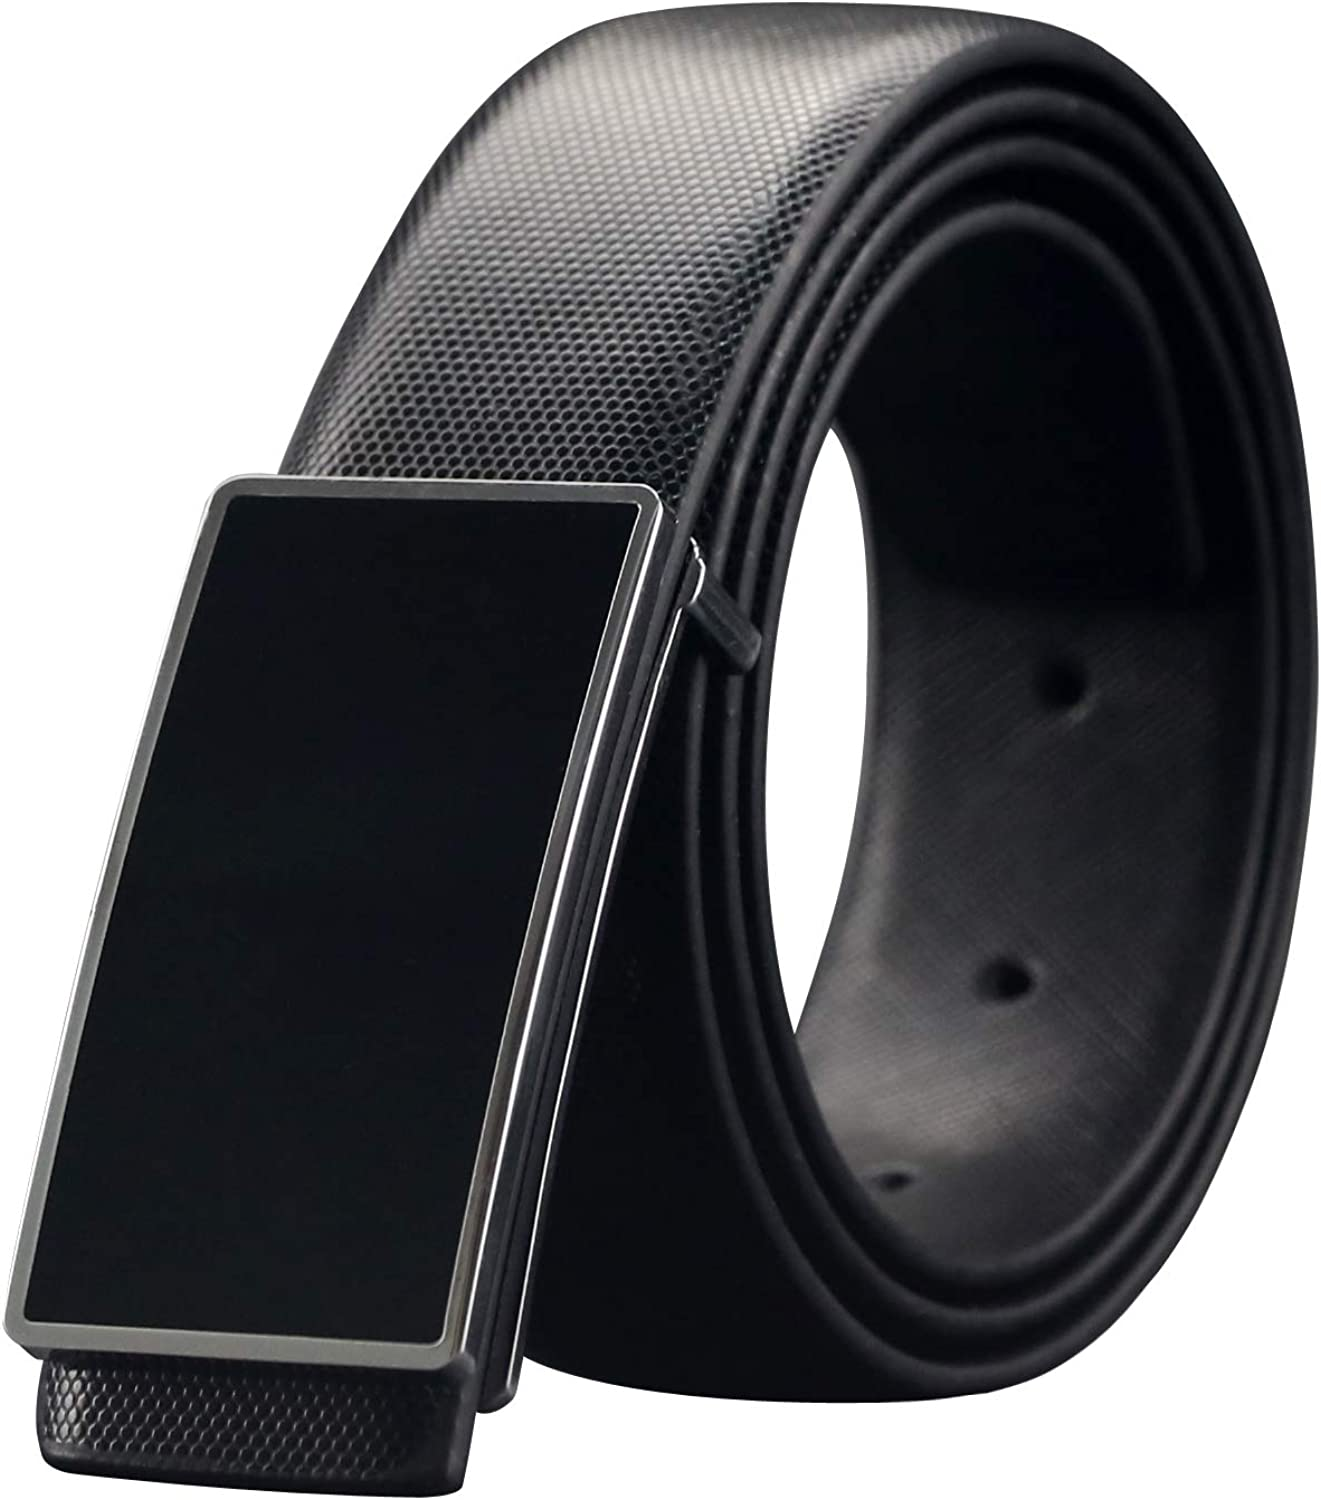 ALLIGATOR STYLE MENS DESIGNER LEATHER BELTS FOR MEN H BELT STRAP ONLY NO BUCKLE